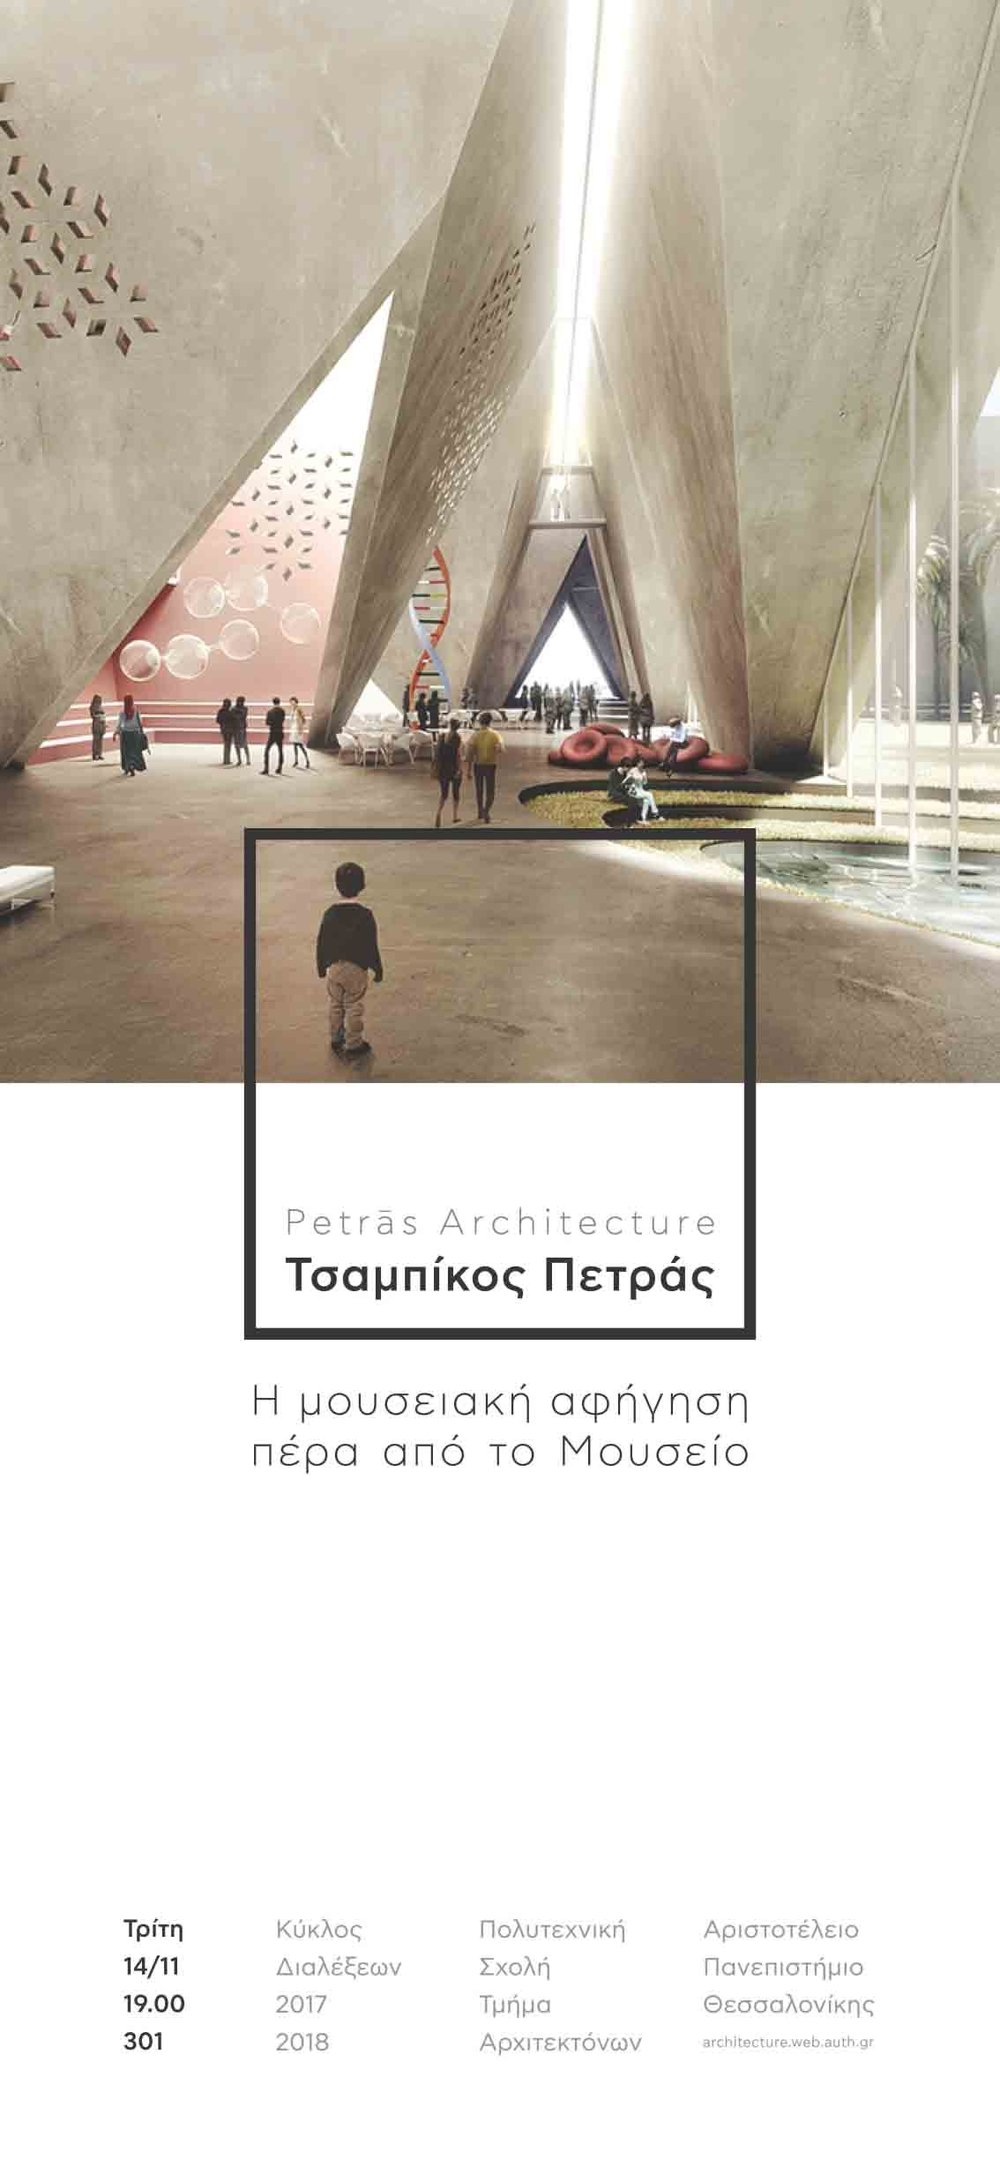 AUTH School of Architecture - Museological narrative beyond museums